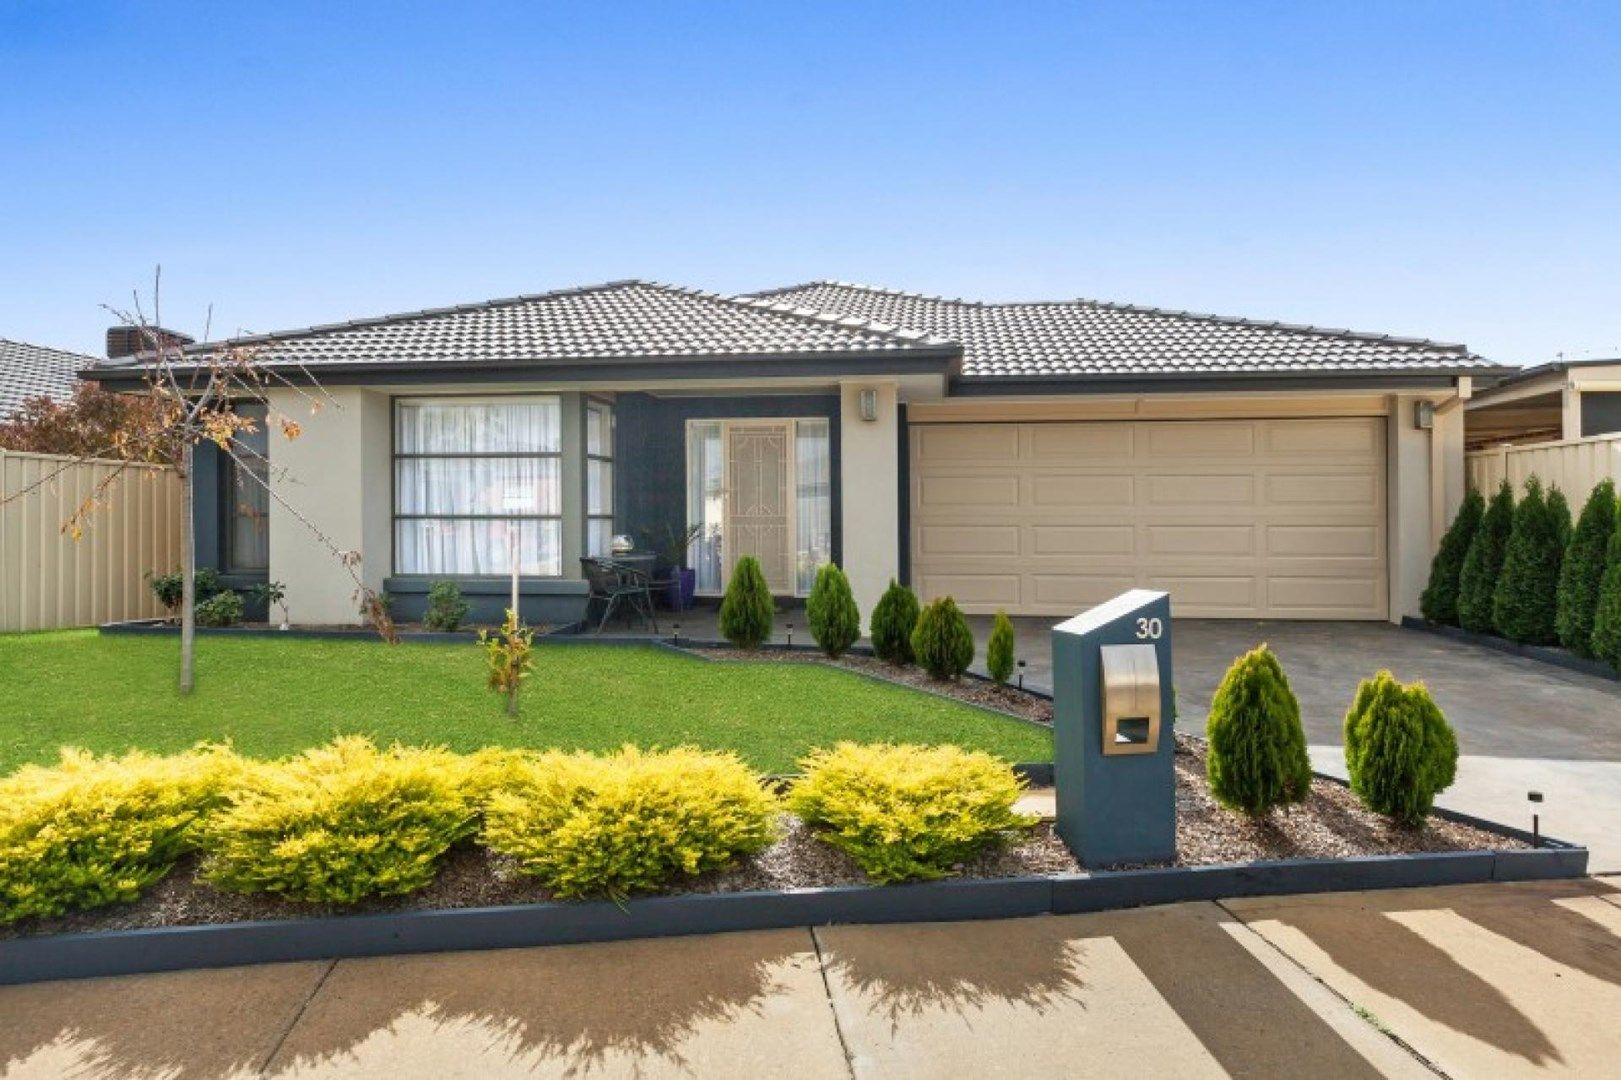 30 Viewhill  Road, Kilmore VIC 3764, Image 0